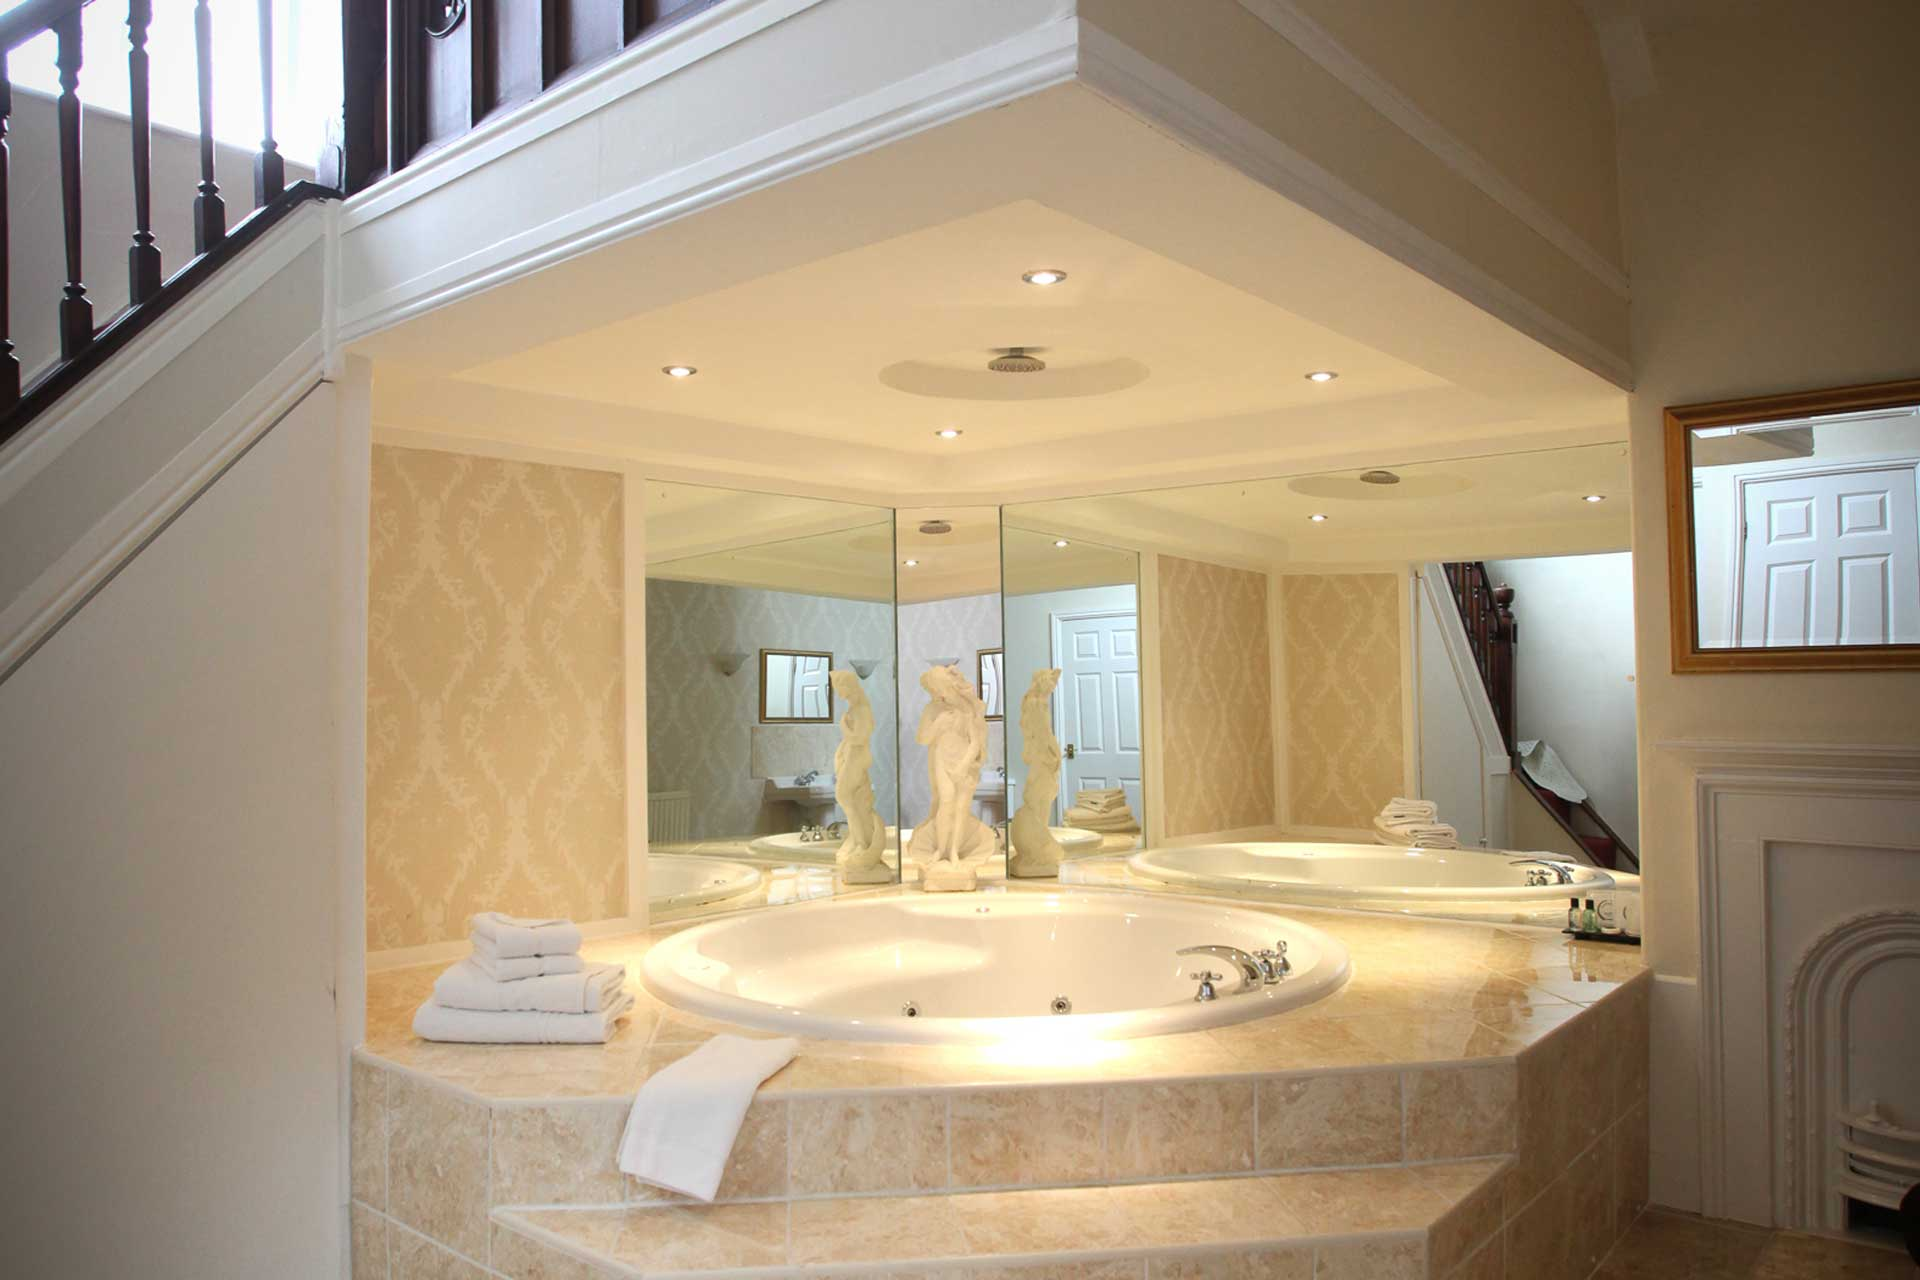 Bathroom Design East Yorkshire accommodation @ cave castle – cave castle hotel & country club